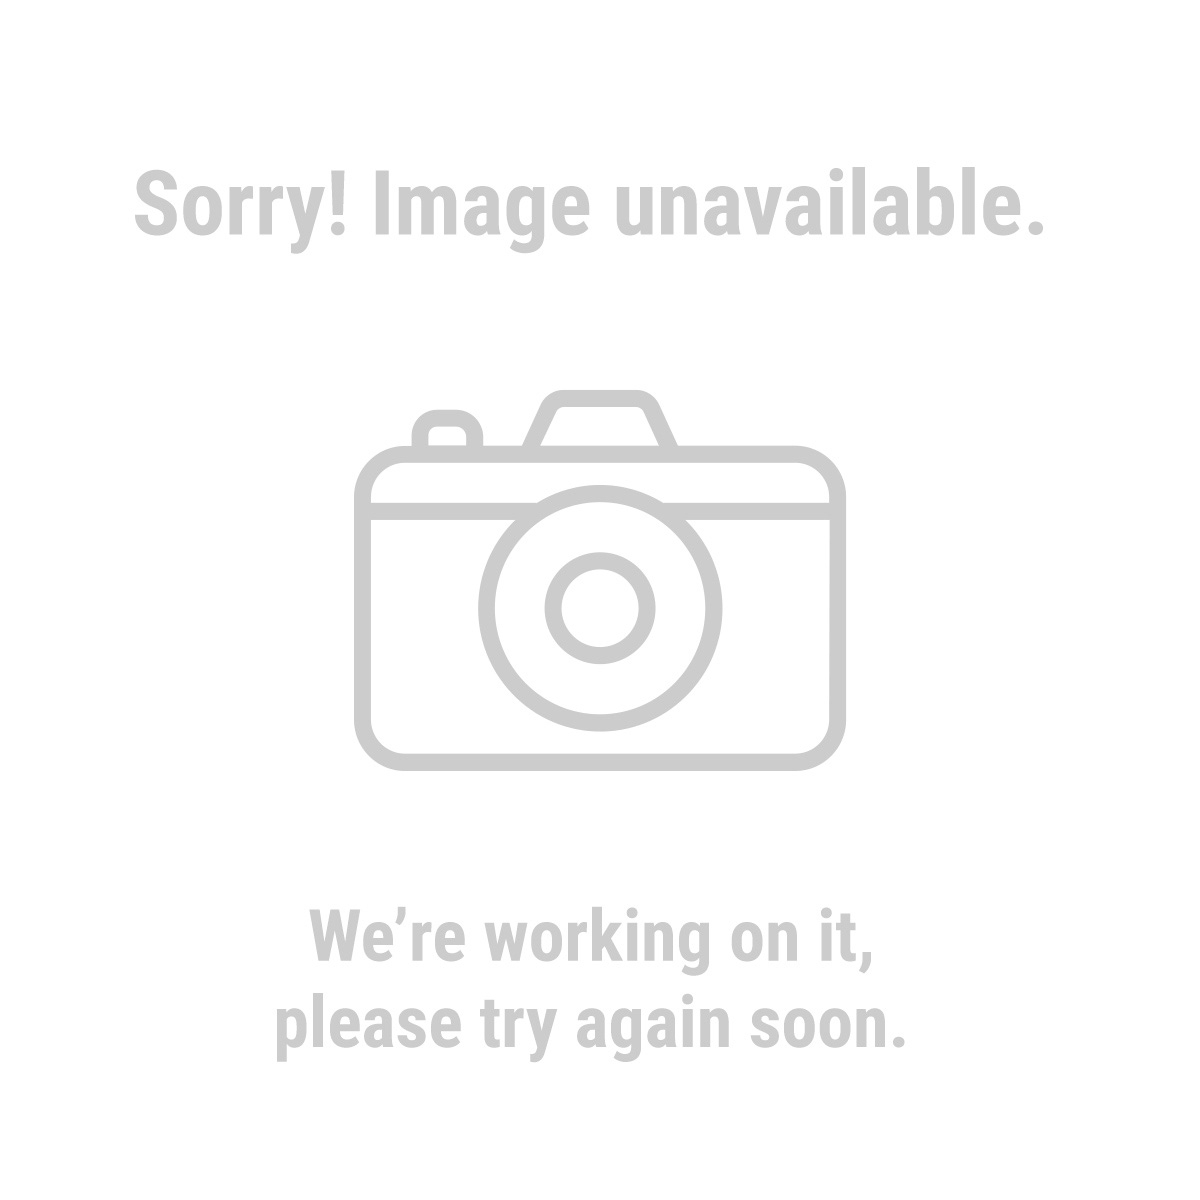 Central Pneumatic 62251 100 ft. x 1/2 in. Heavy Duty Premium Rubber Air Hose